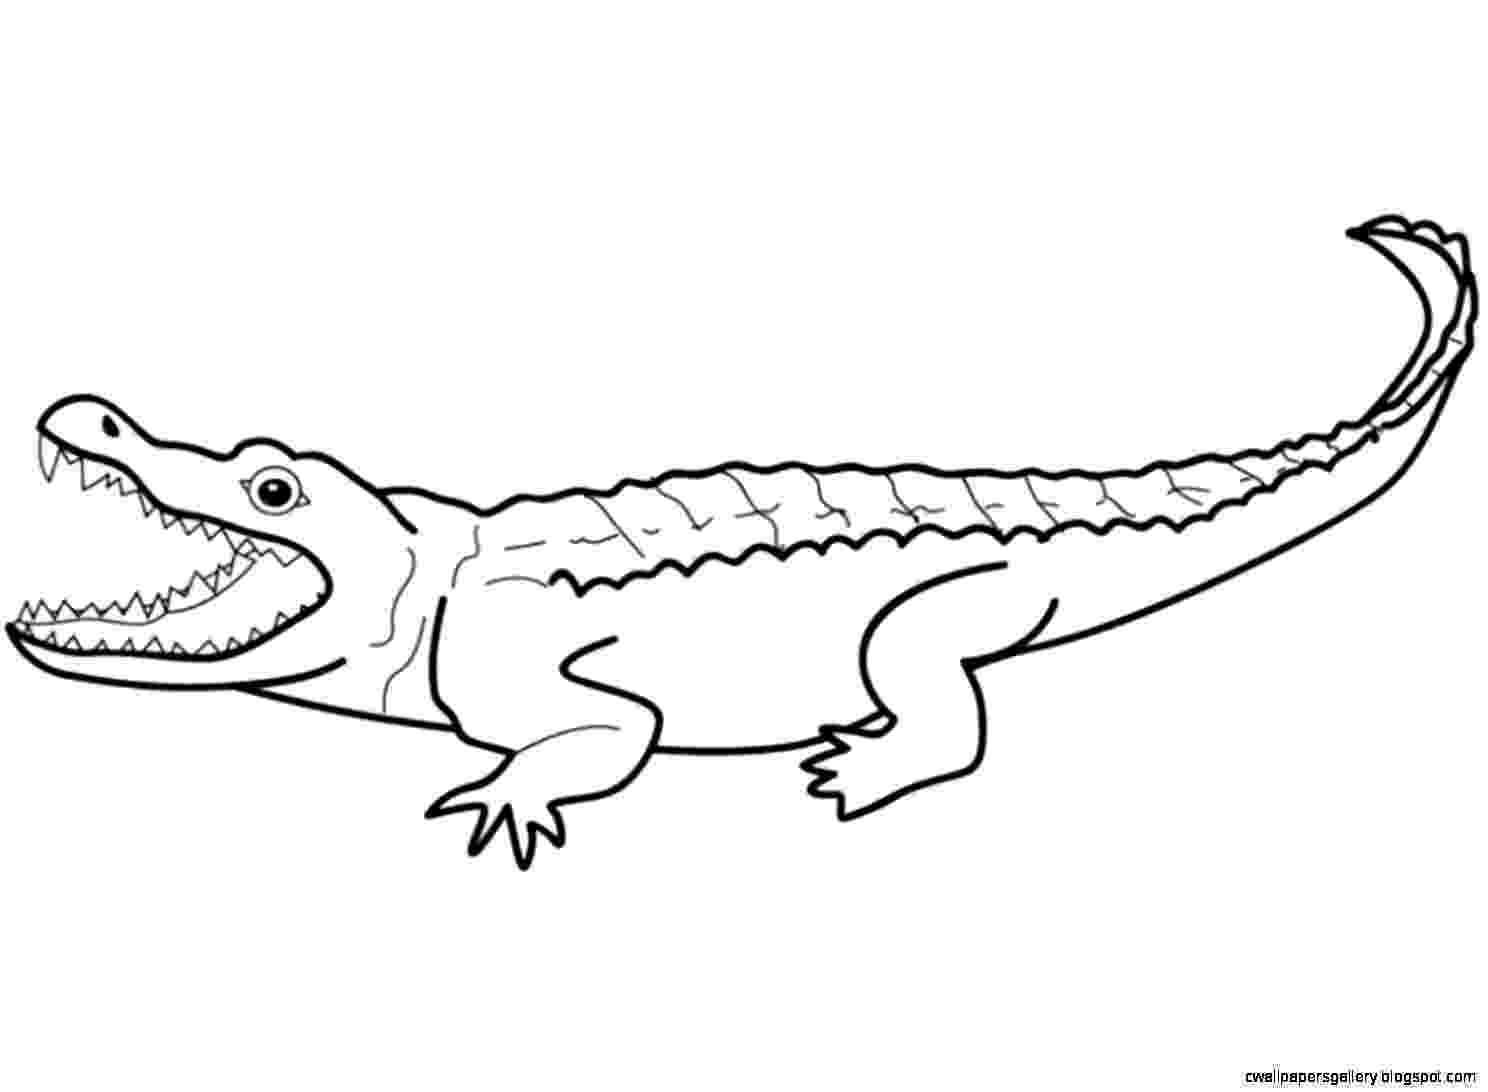 reptile coloring pages bugs and reptiles to color coloring reptile pages